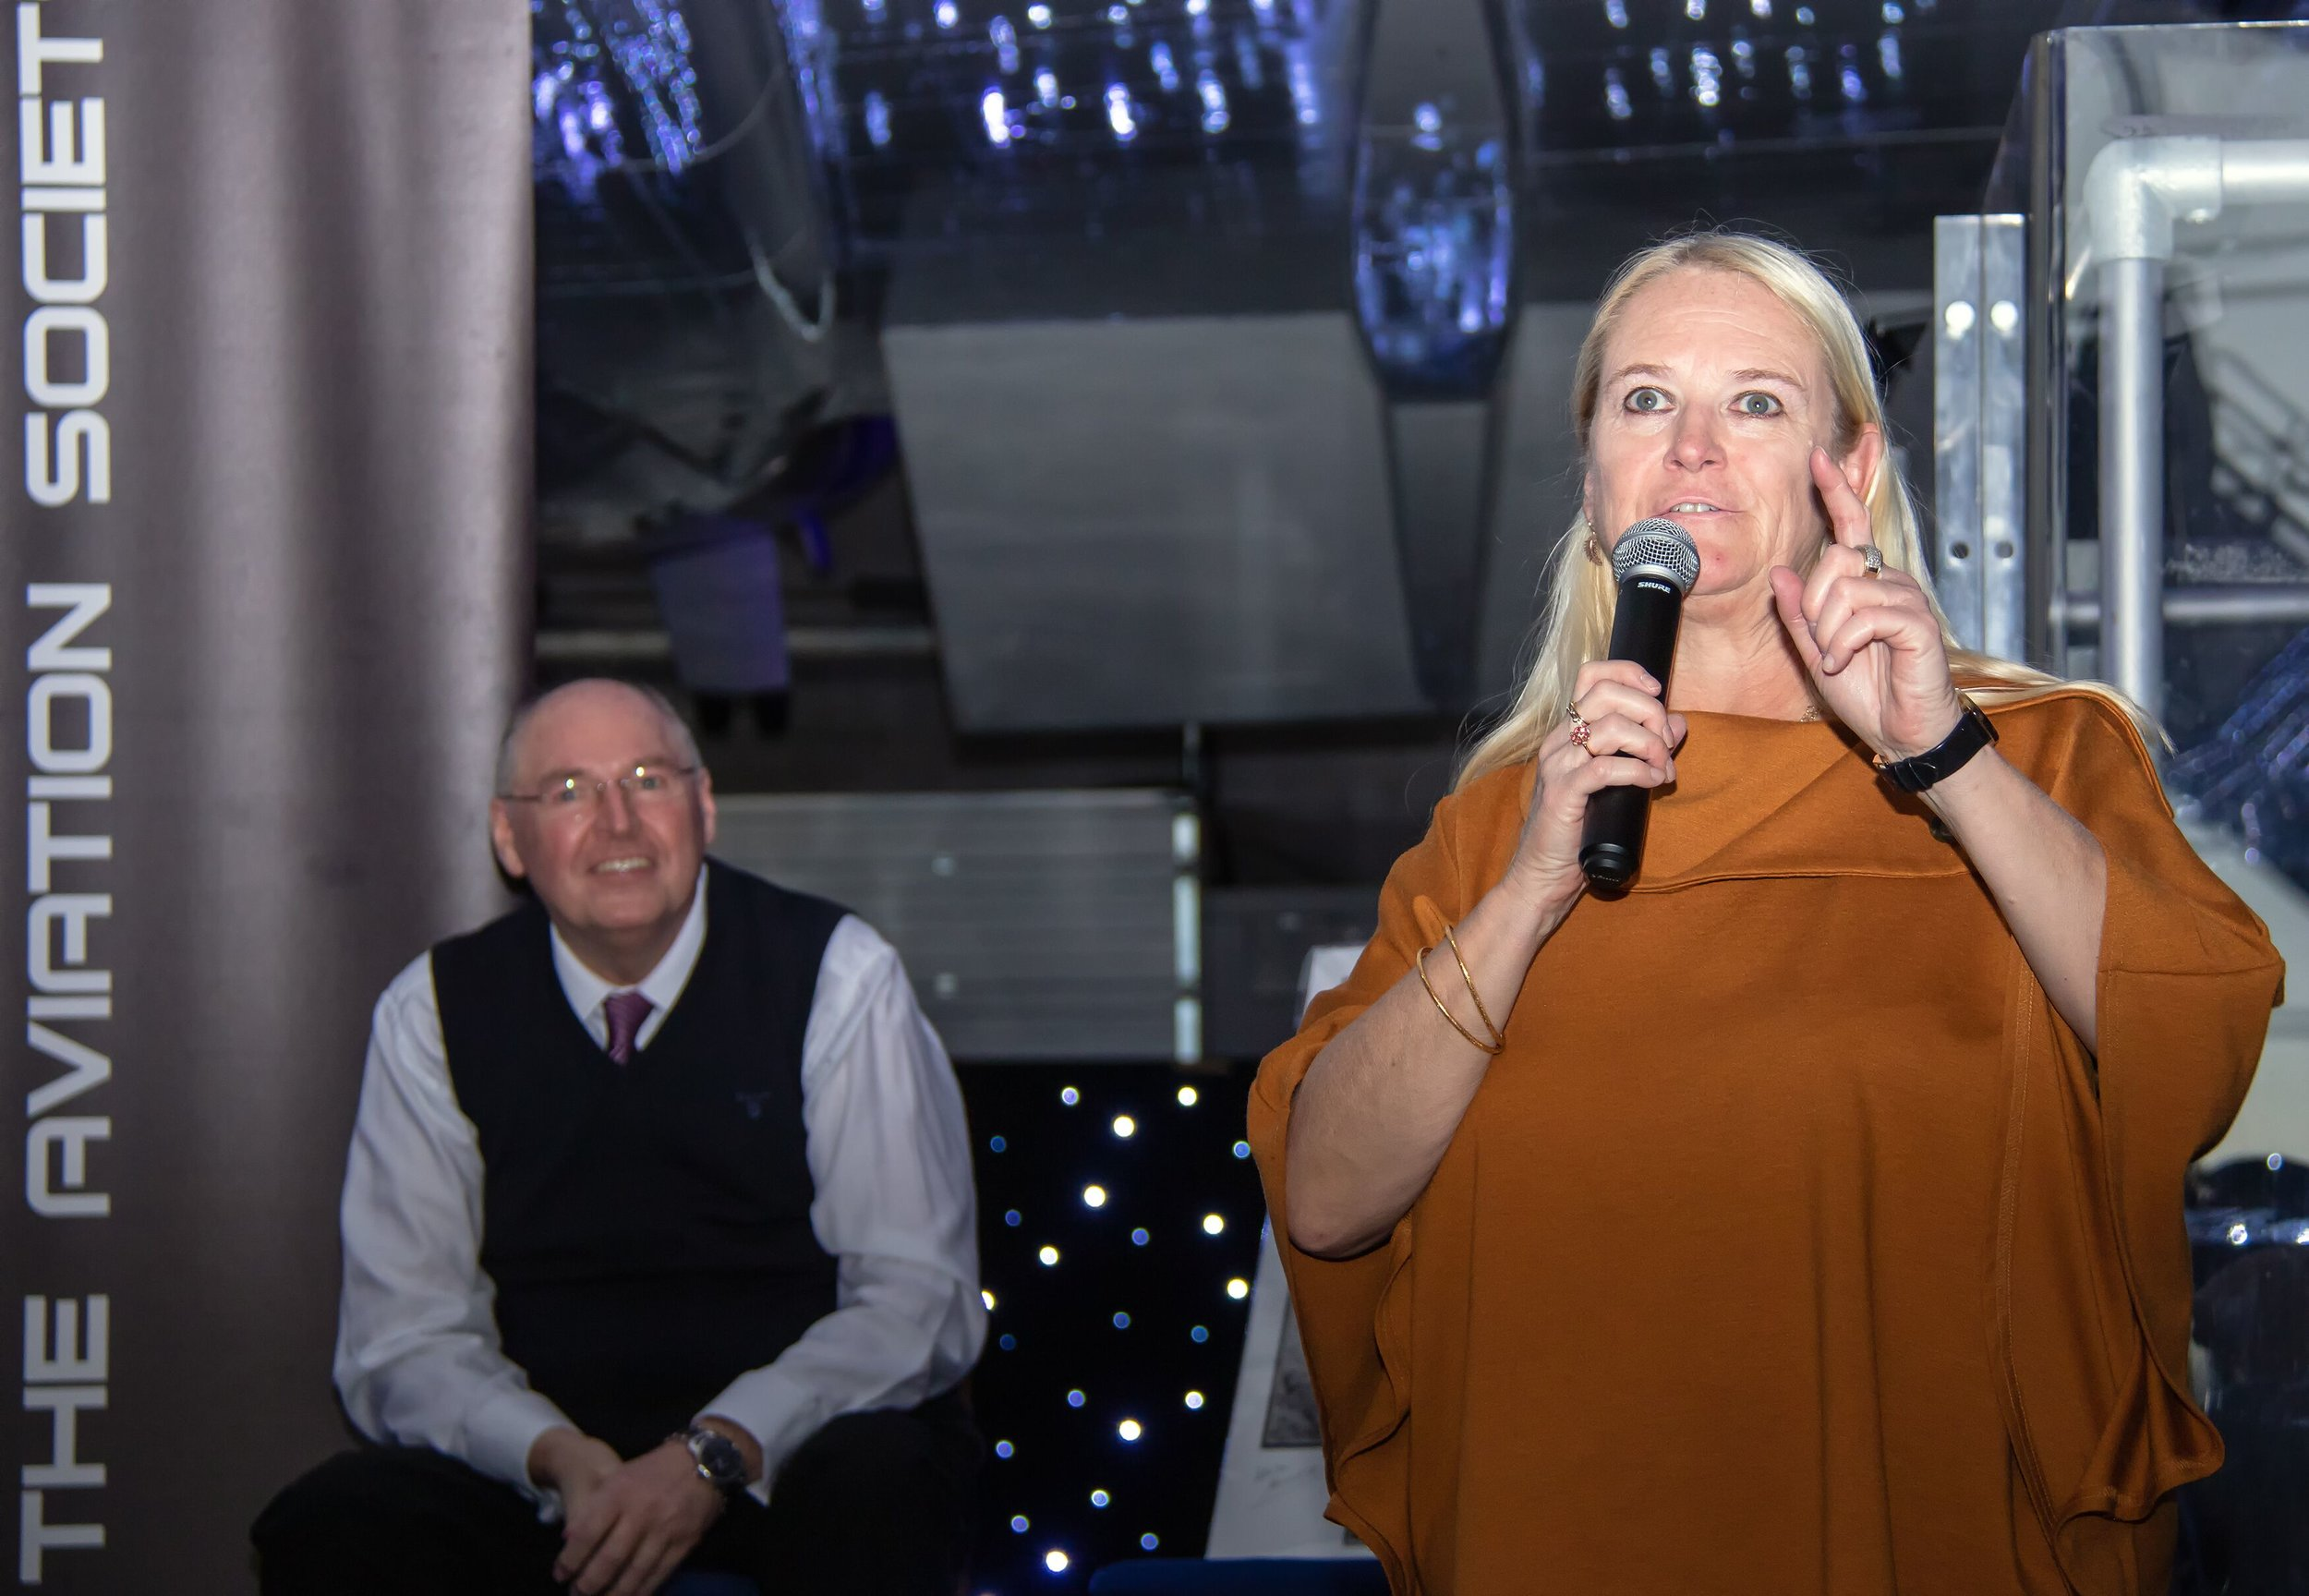 TAS Secretary and one of the event organisers Debbie Riley was kept busy throughout the event ensuring everyone had the opportunity to look on board Concorde and see all the alterations which have been made in conjunction with Heritage Concorde and TAS.